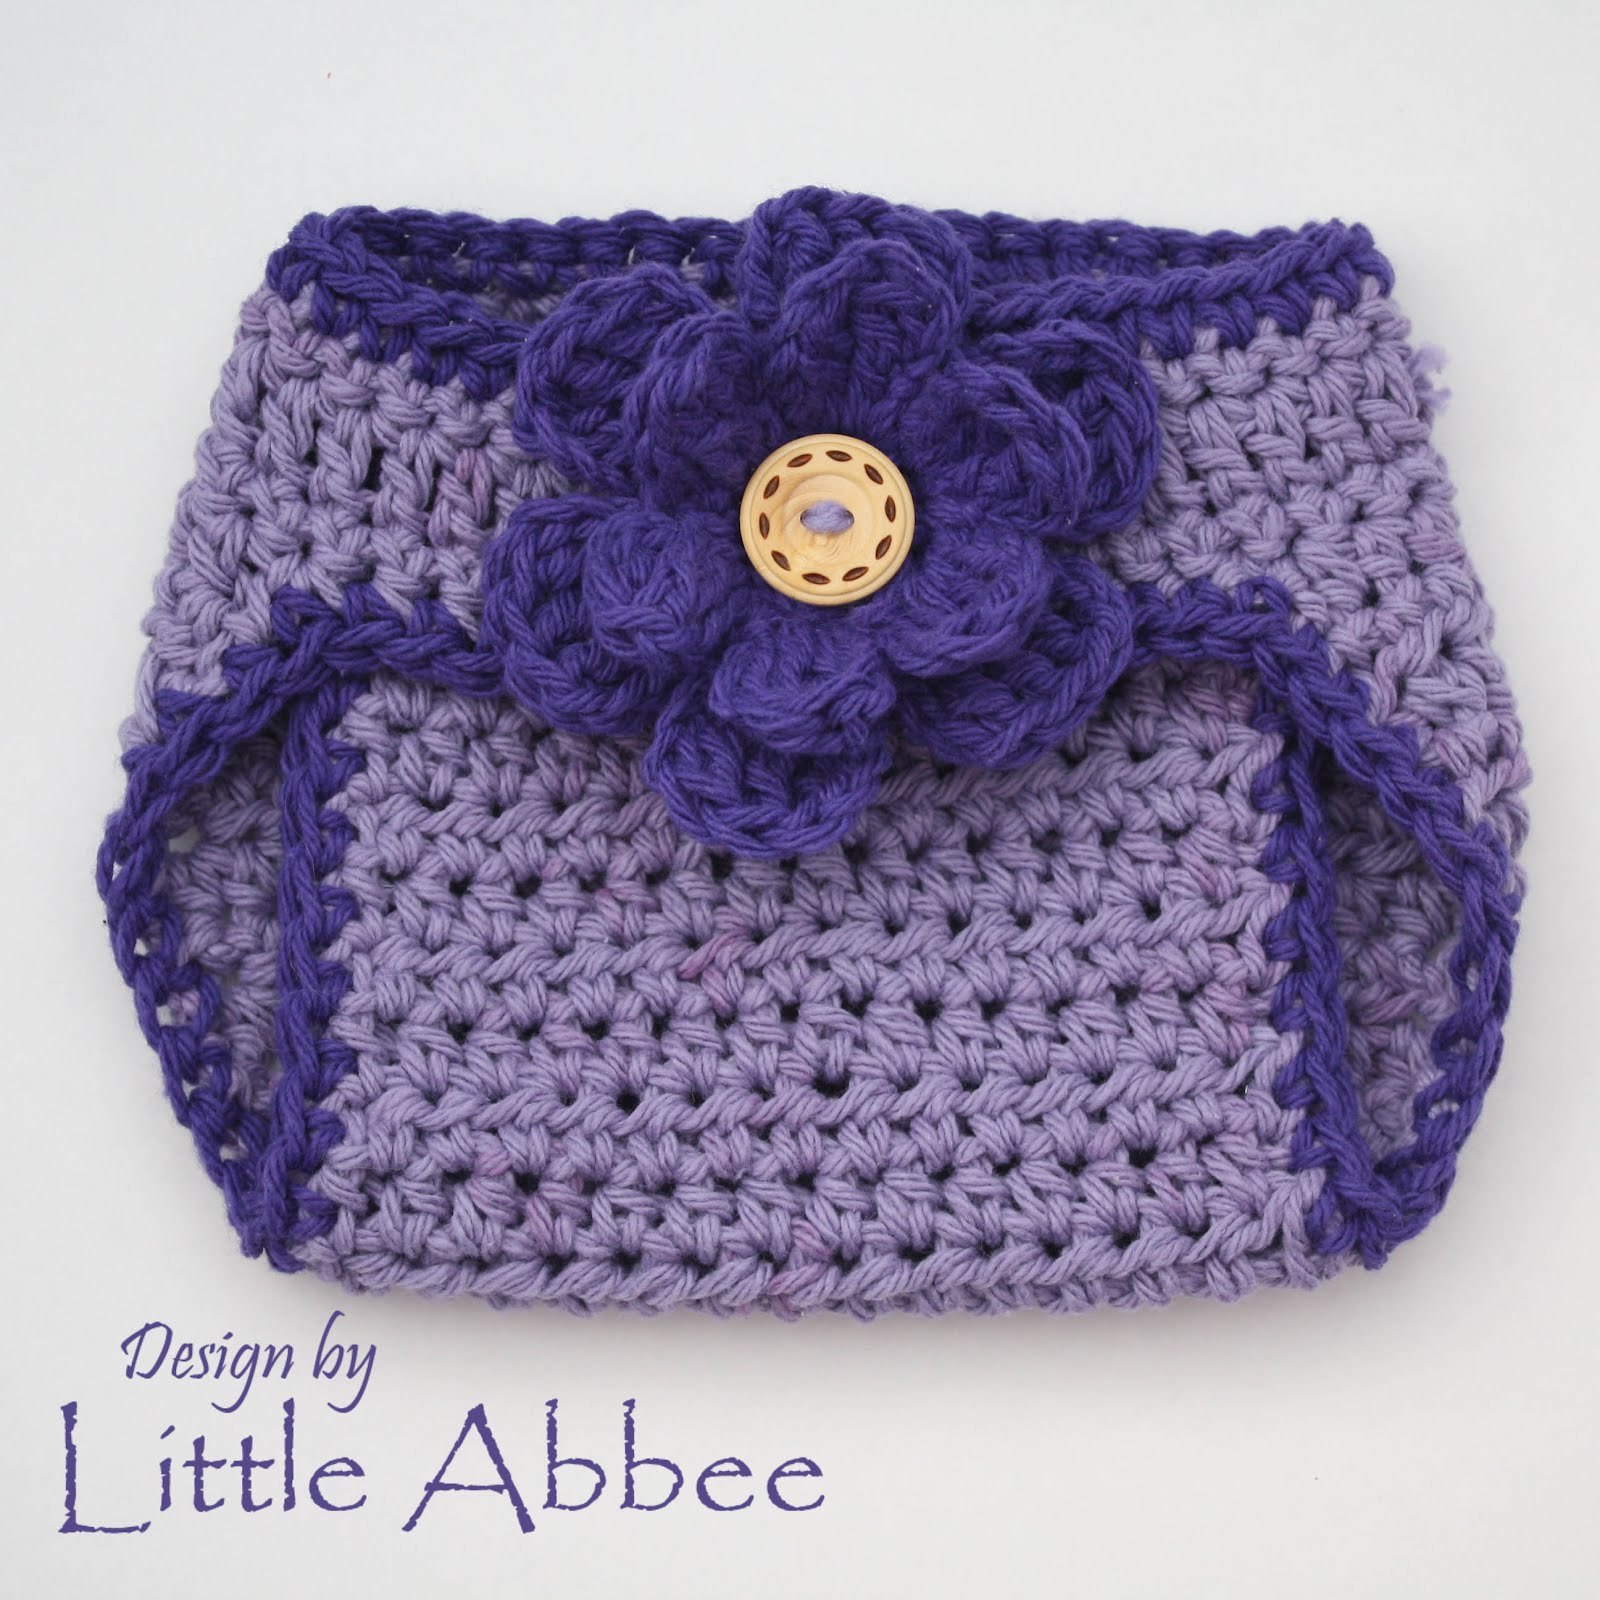 Crochet Patterns Diaper Covers : Little Abbee: Diaper Cover Crochet Pattern